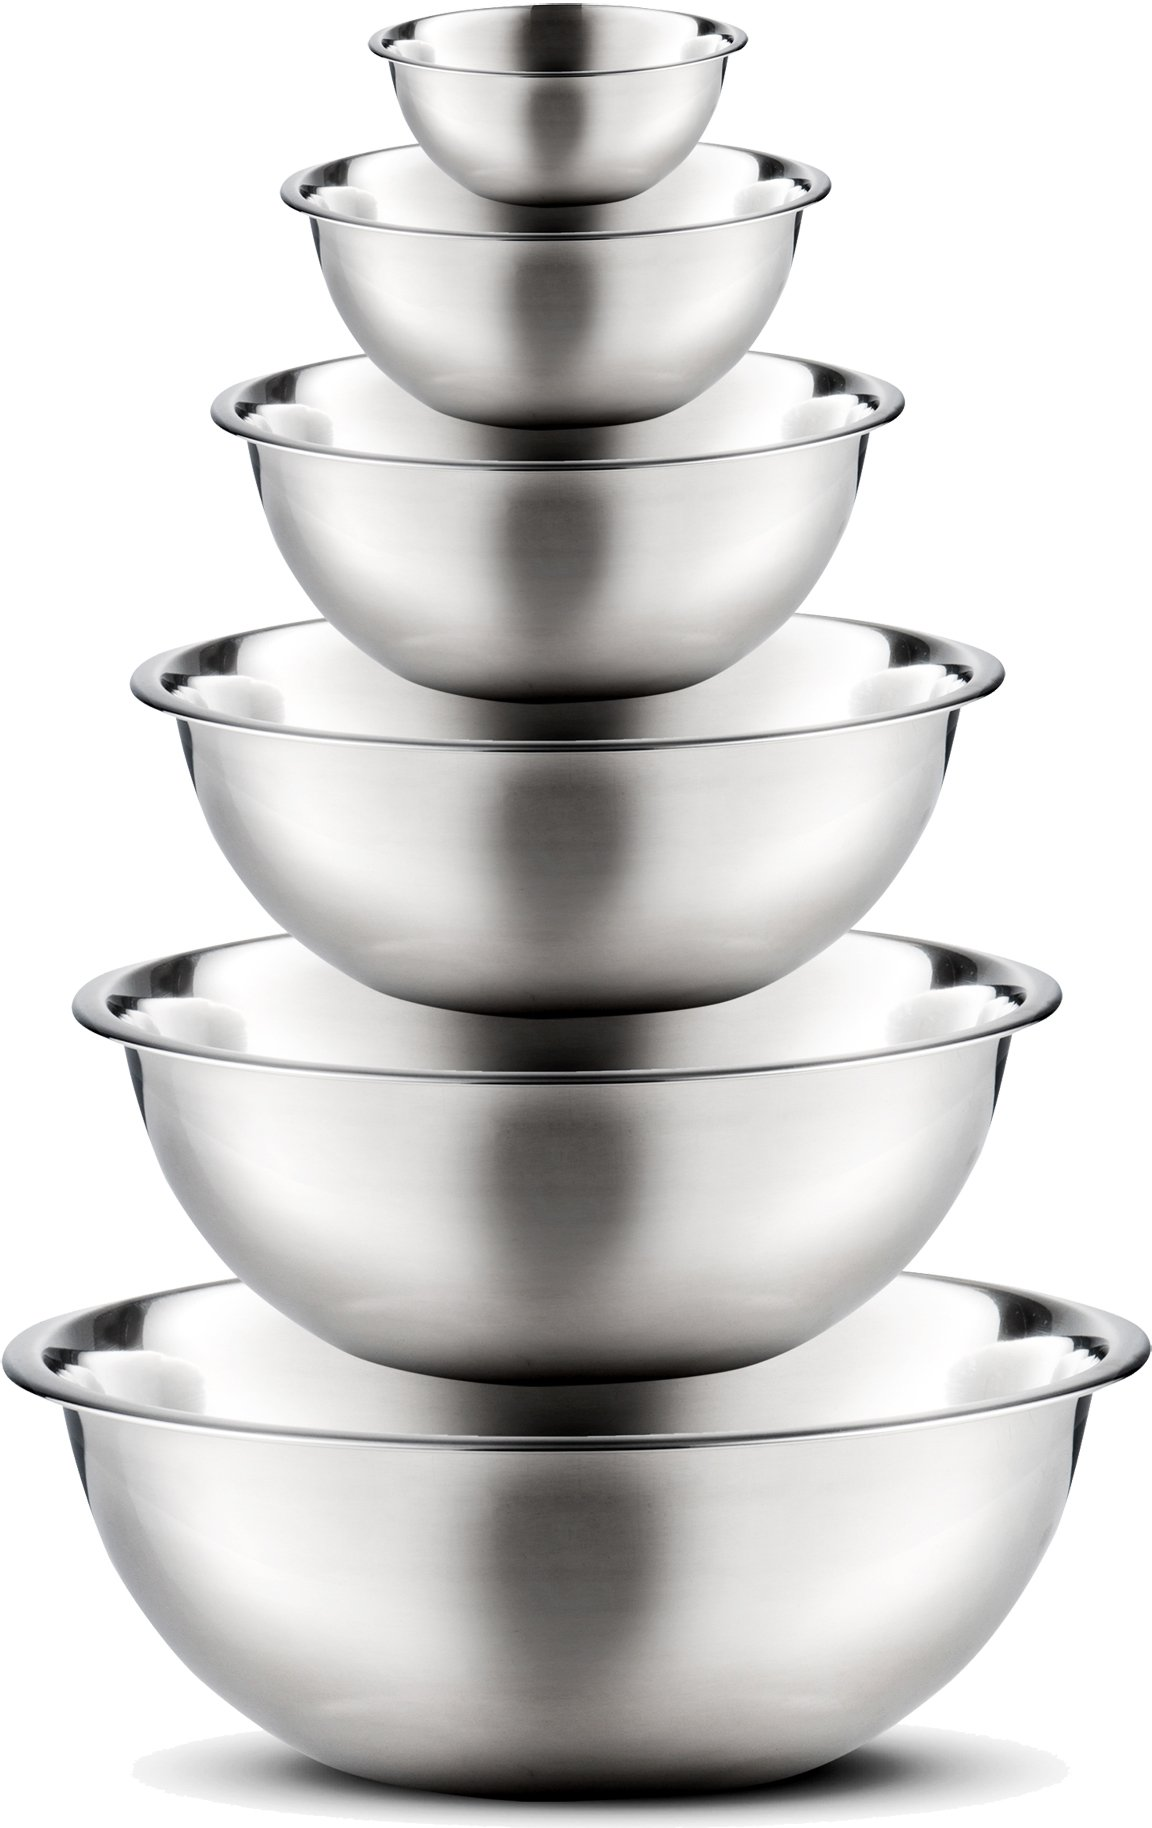 Stainless Steel Mixing Bowls by Finedine (Set of 6) Polished Mirror Finish Nesting Bowl, ¾ - 1.5-3 - 4-5 - 8 Quart - Cooking Supplies by FINEDINE (Image #1)